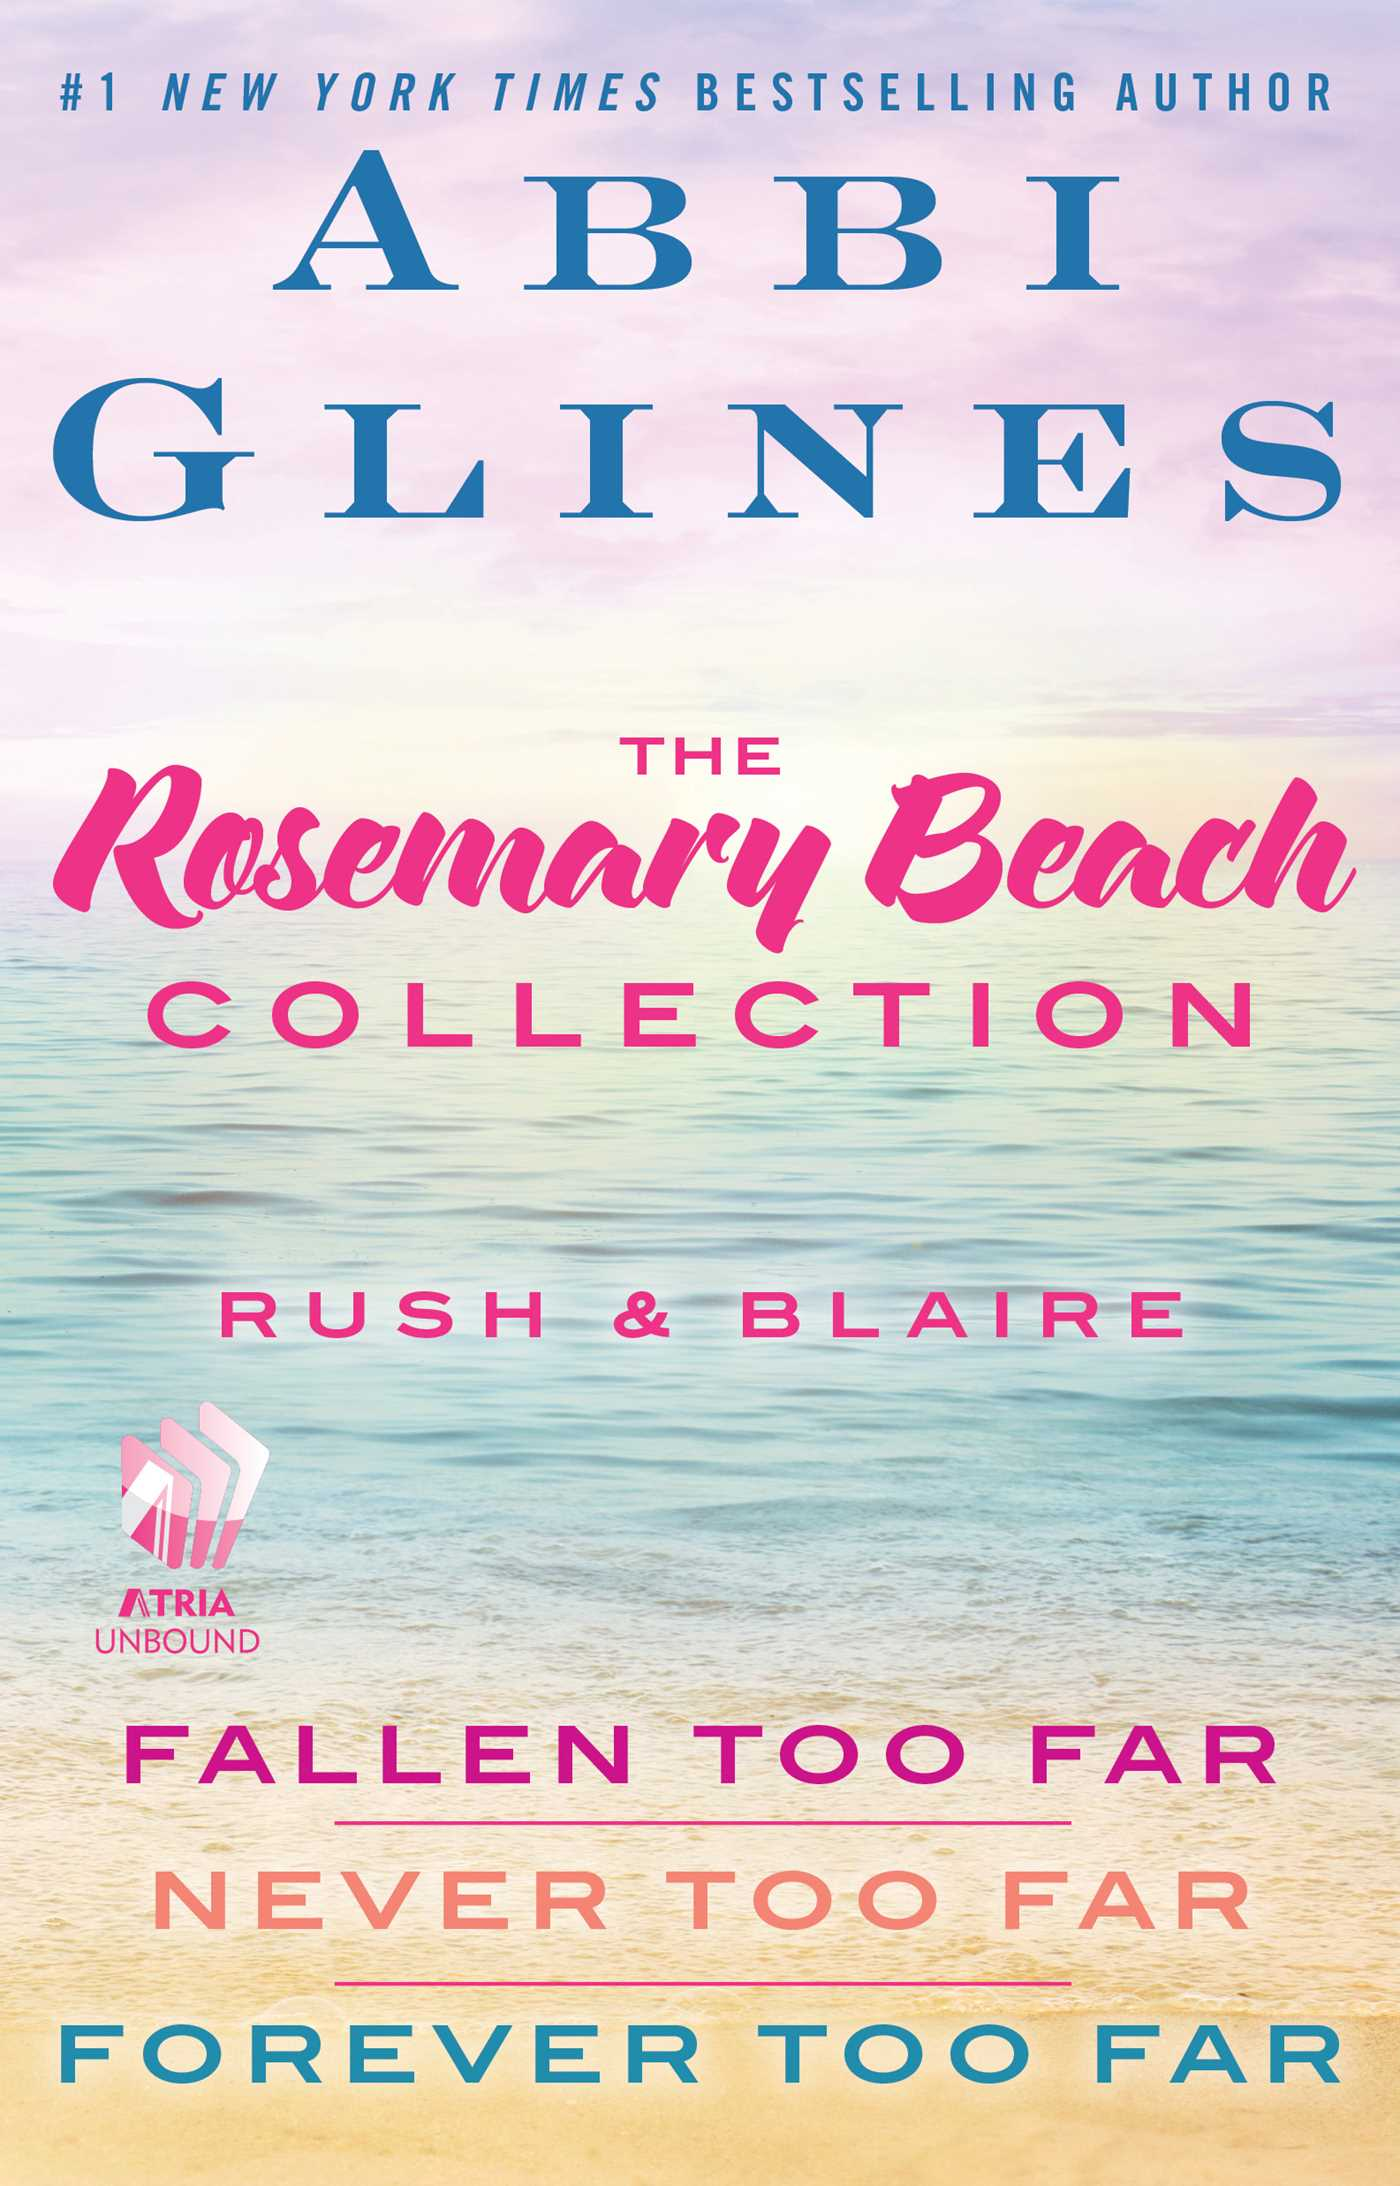 The rosemary beach collection rush and blaire ebook by abbi glines fallen too far never too far and forever too far fandeluxe Choice Image